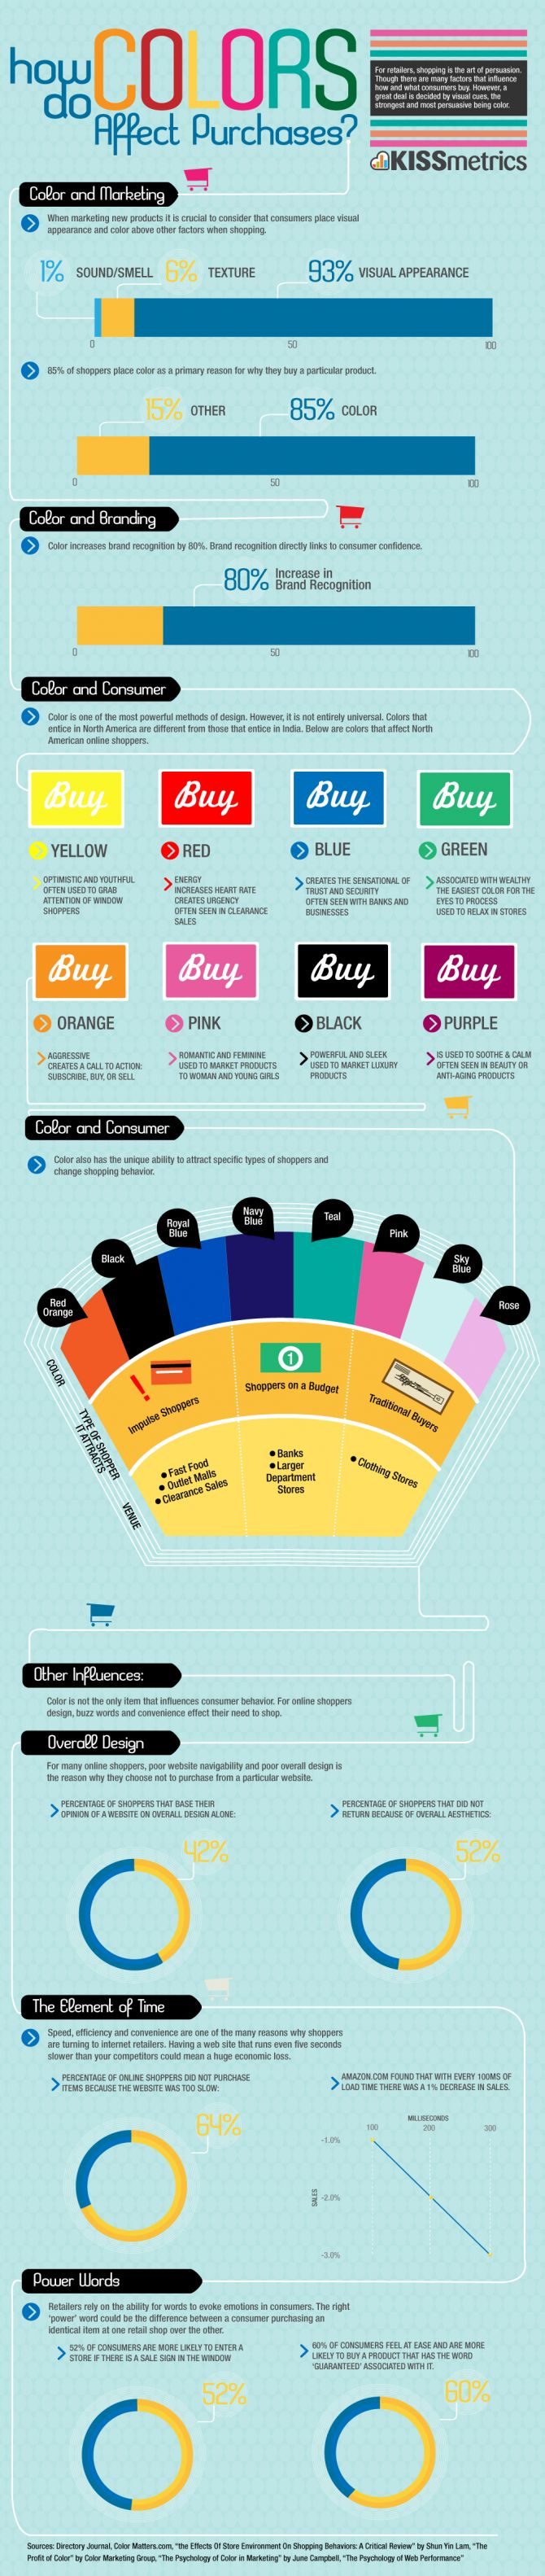 45 best social learning theory images on pinterest social cmo afectan los colores a las compras how do colors affect purchases sciox Choice Image